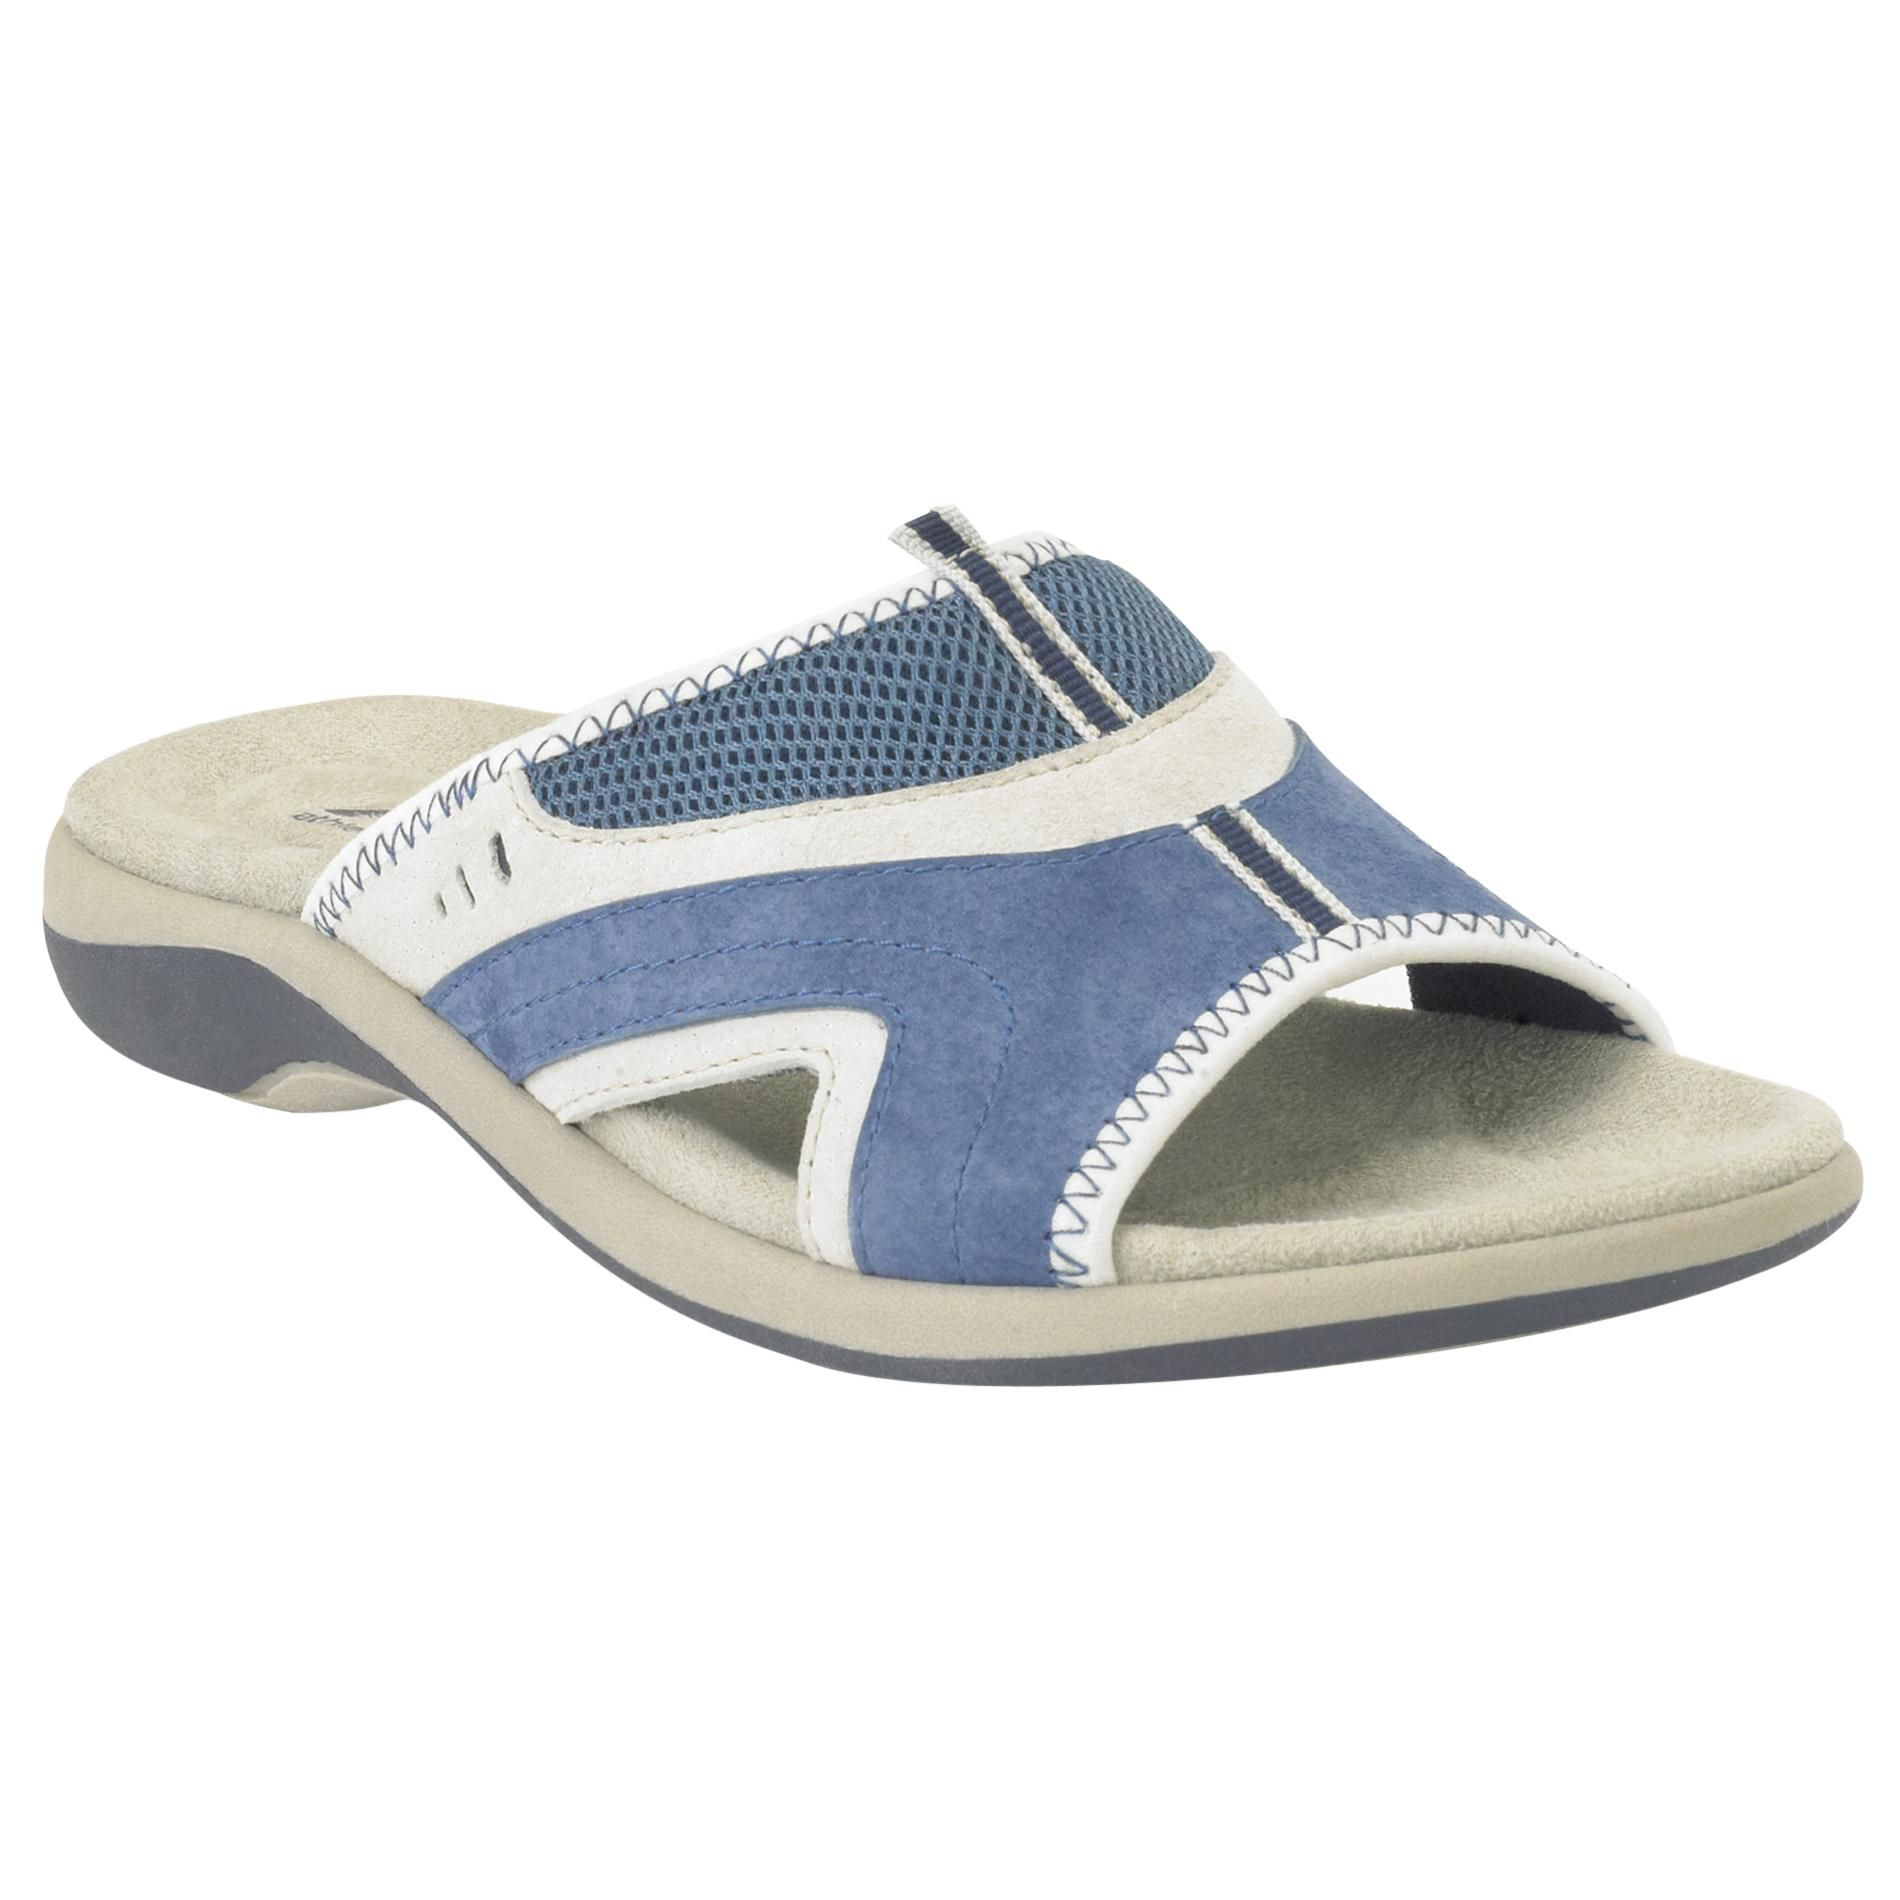 Athletech  Women's Beverlee Sporty Slide